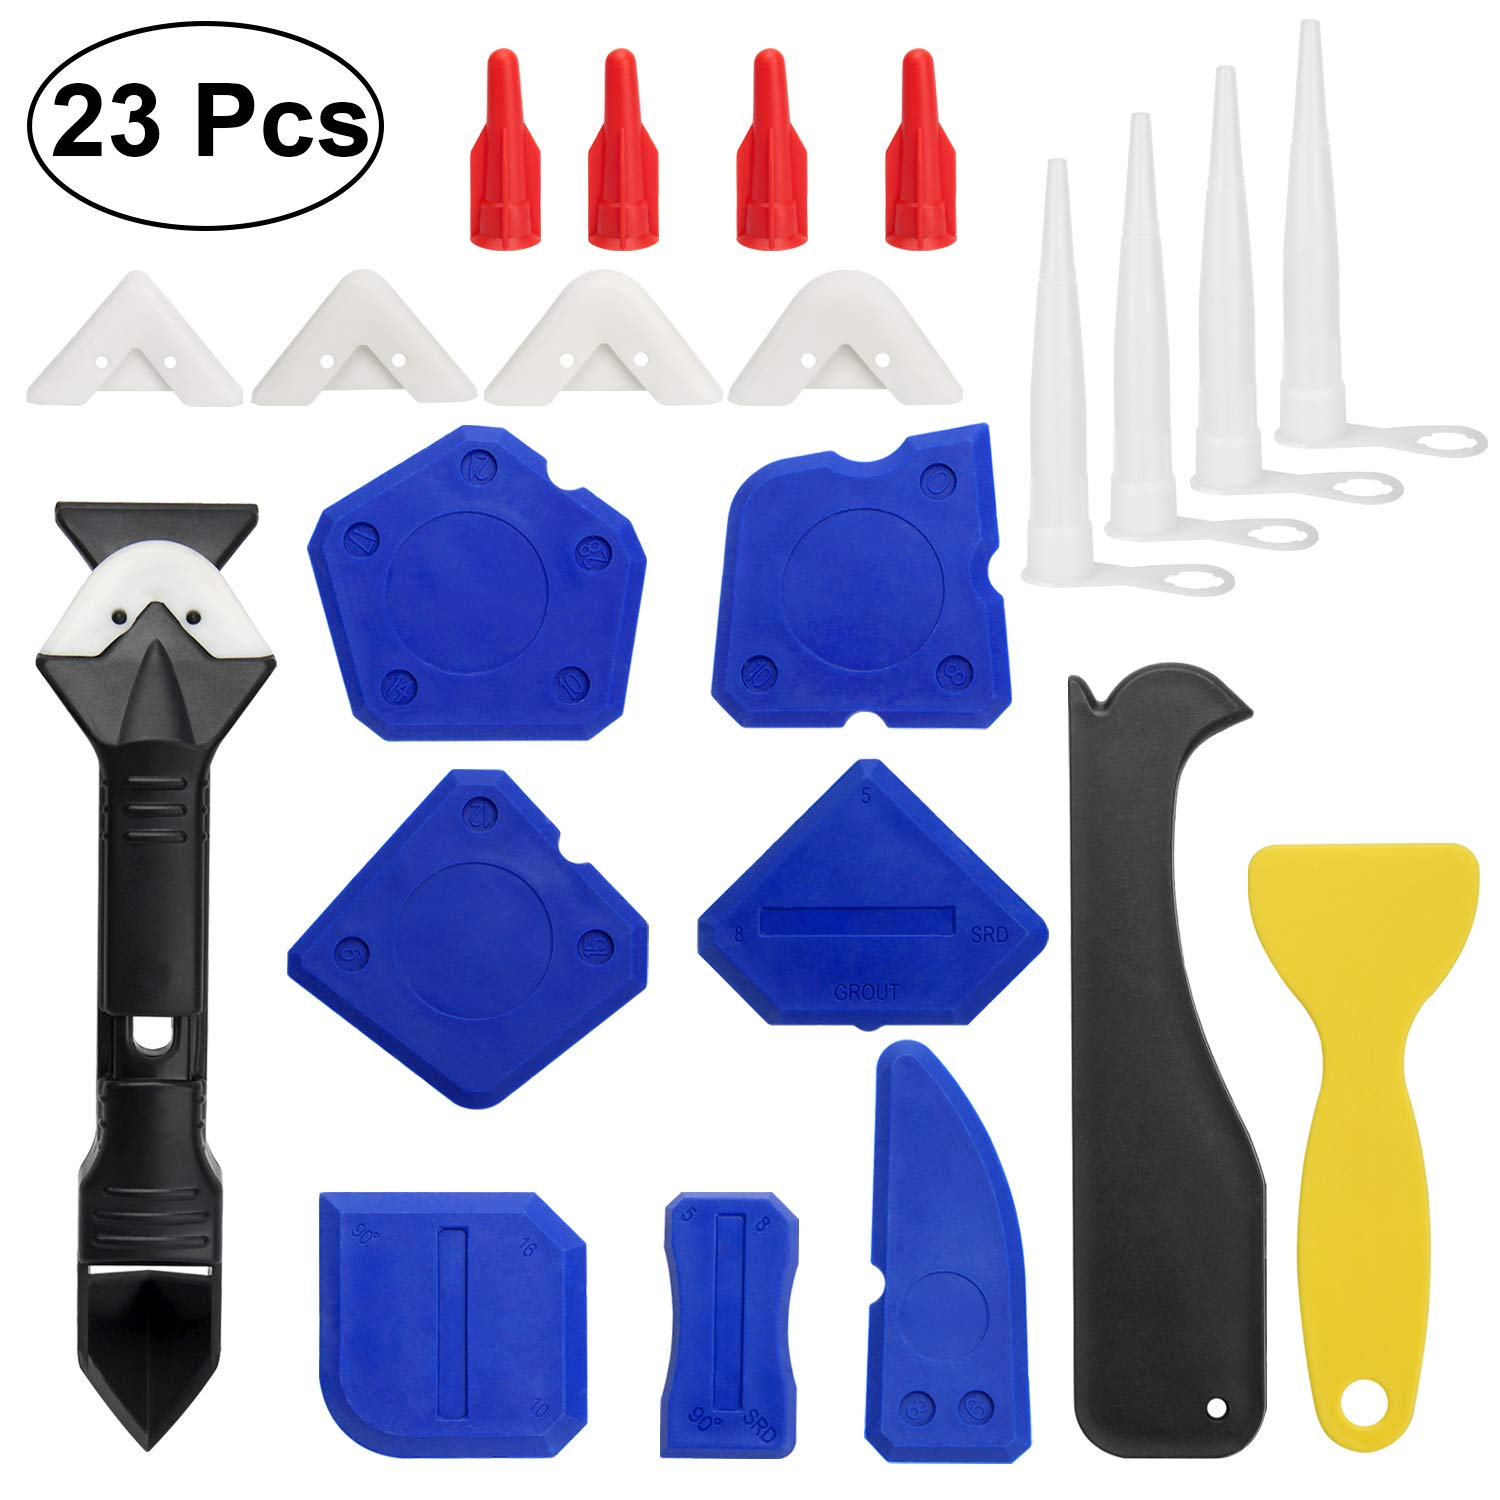 23 Pieces Caulking Tool Kit, 3 in 1 Caulking Tools Silicone Sealant Finishing Tool Grout Scraper Caulk Remover and Caulk Nozzle and Caulk Caps 3 Replaceable Pads Bathroom, Kitchen, Room Sealing. by Colovis